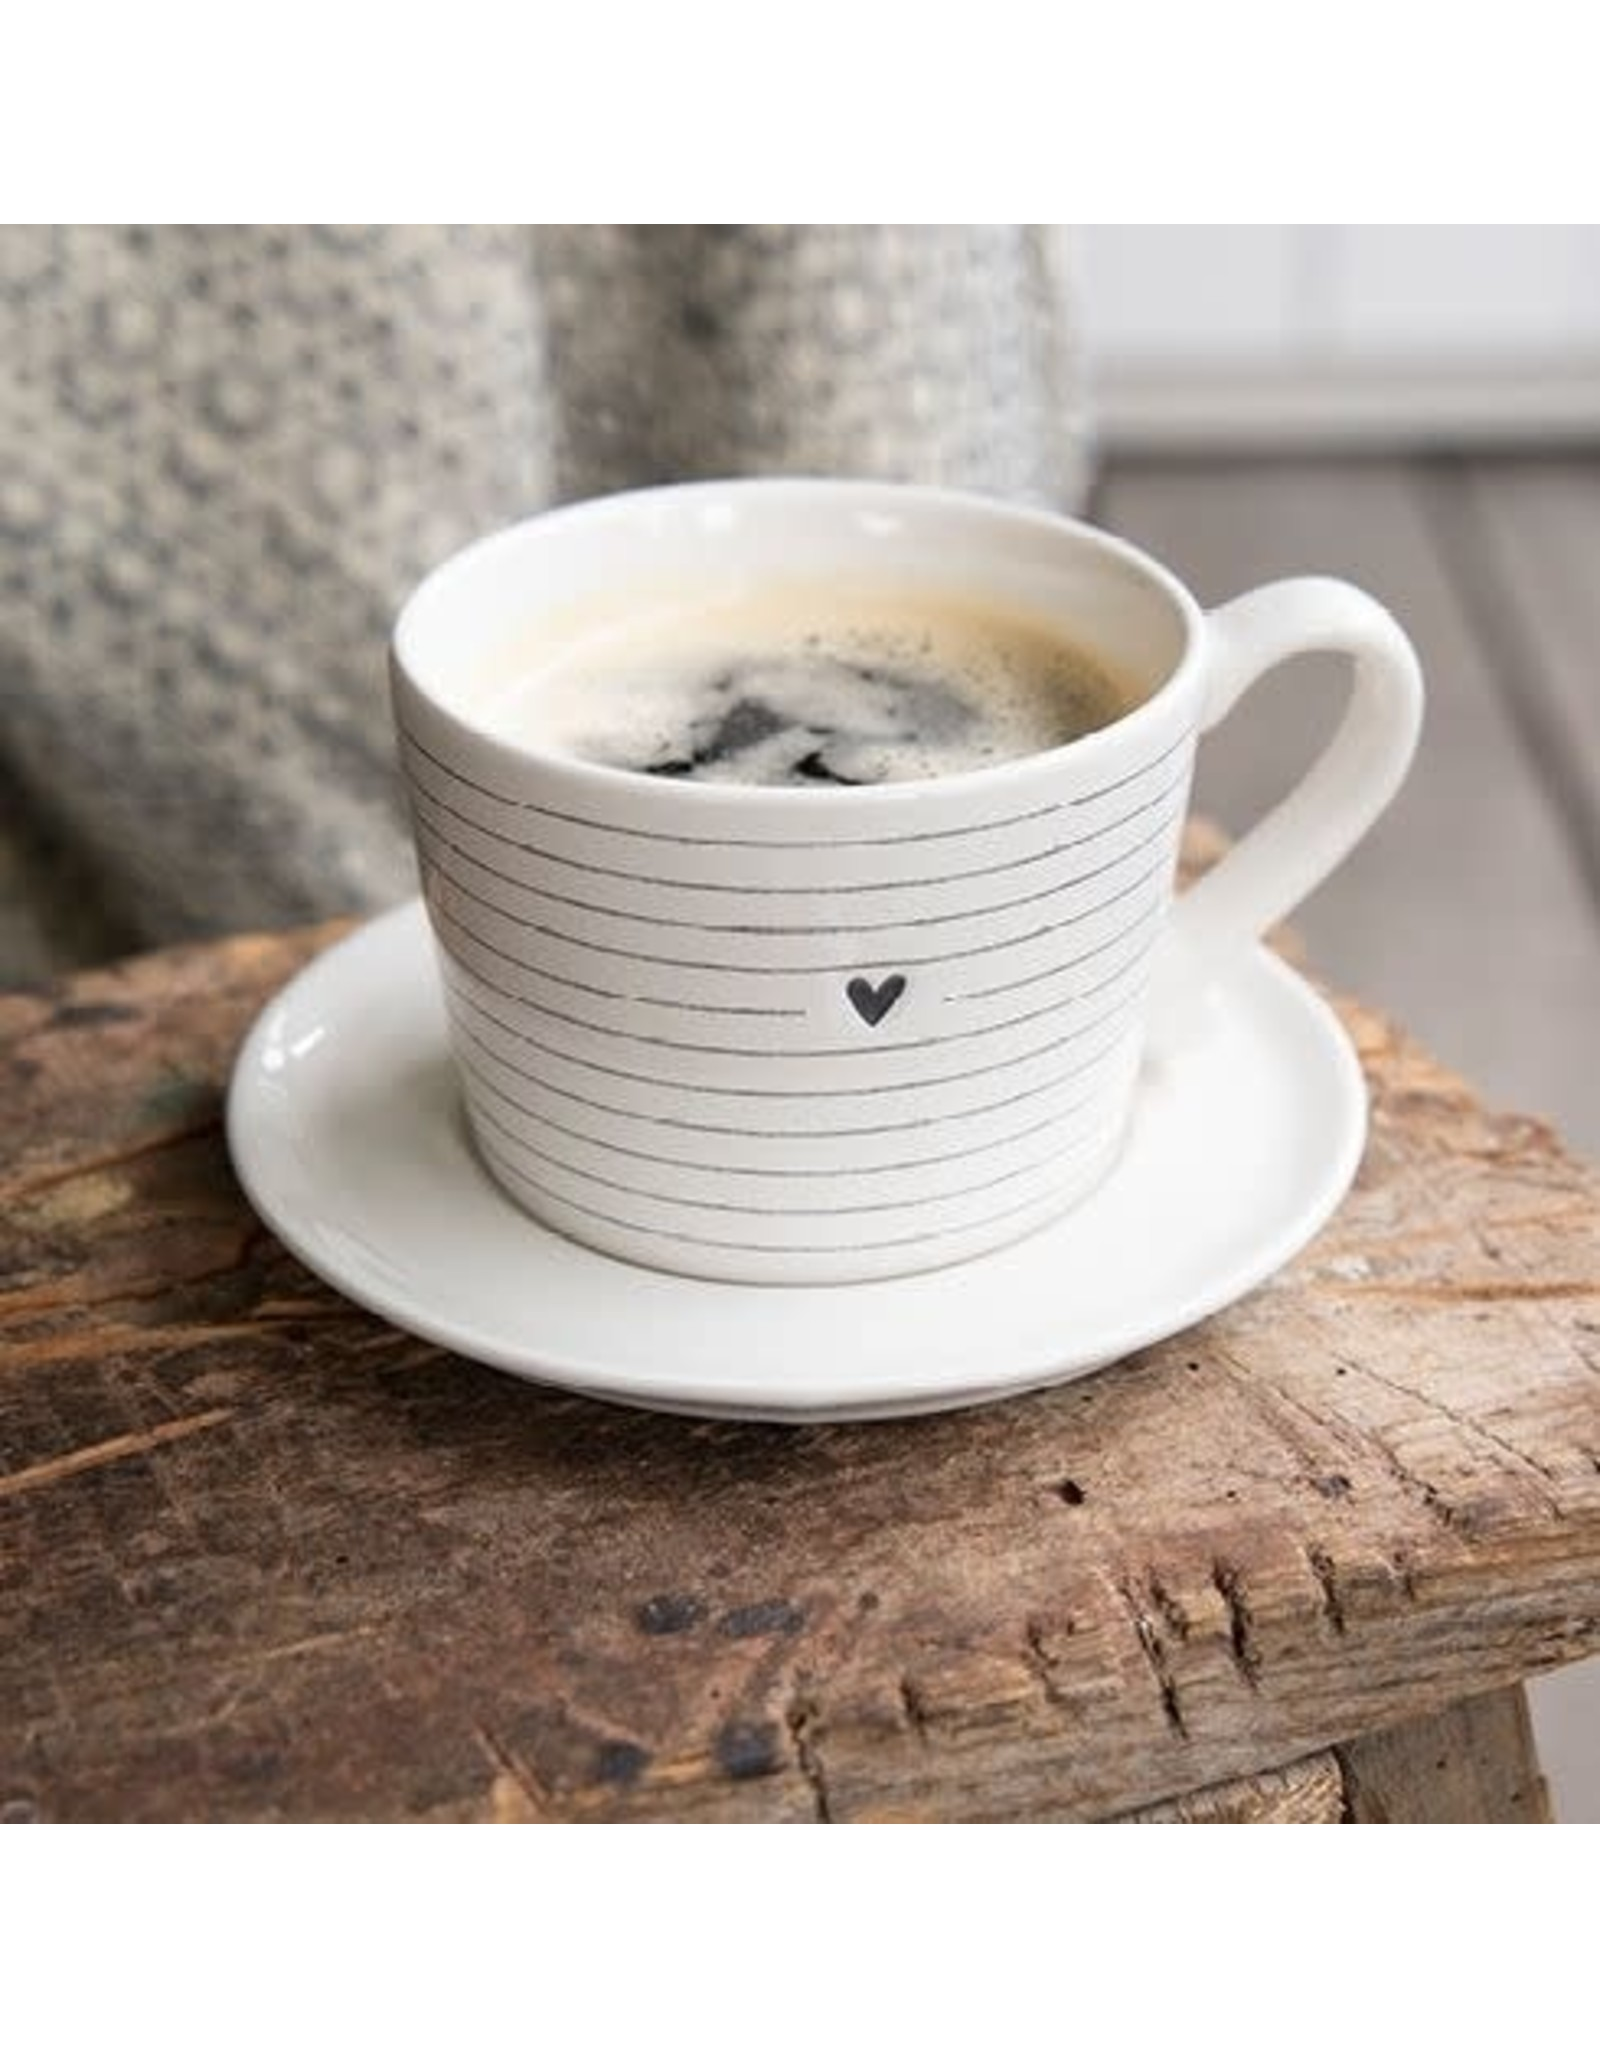 Bastion Collections Bastion Collections Cup RJ/CUP 041 BL